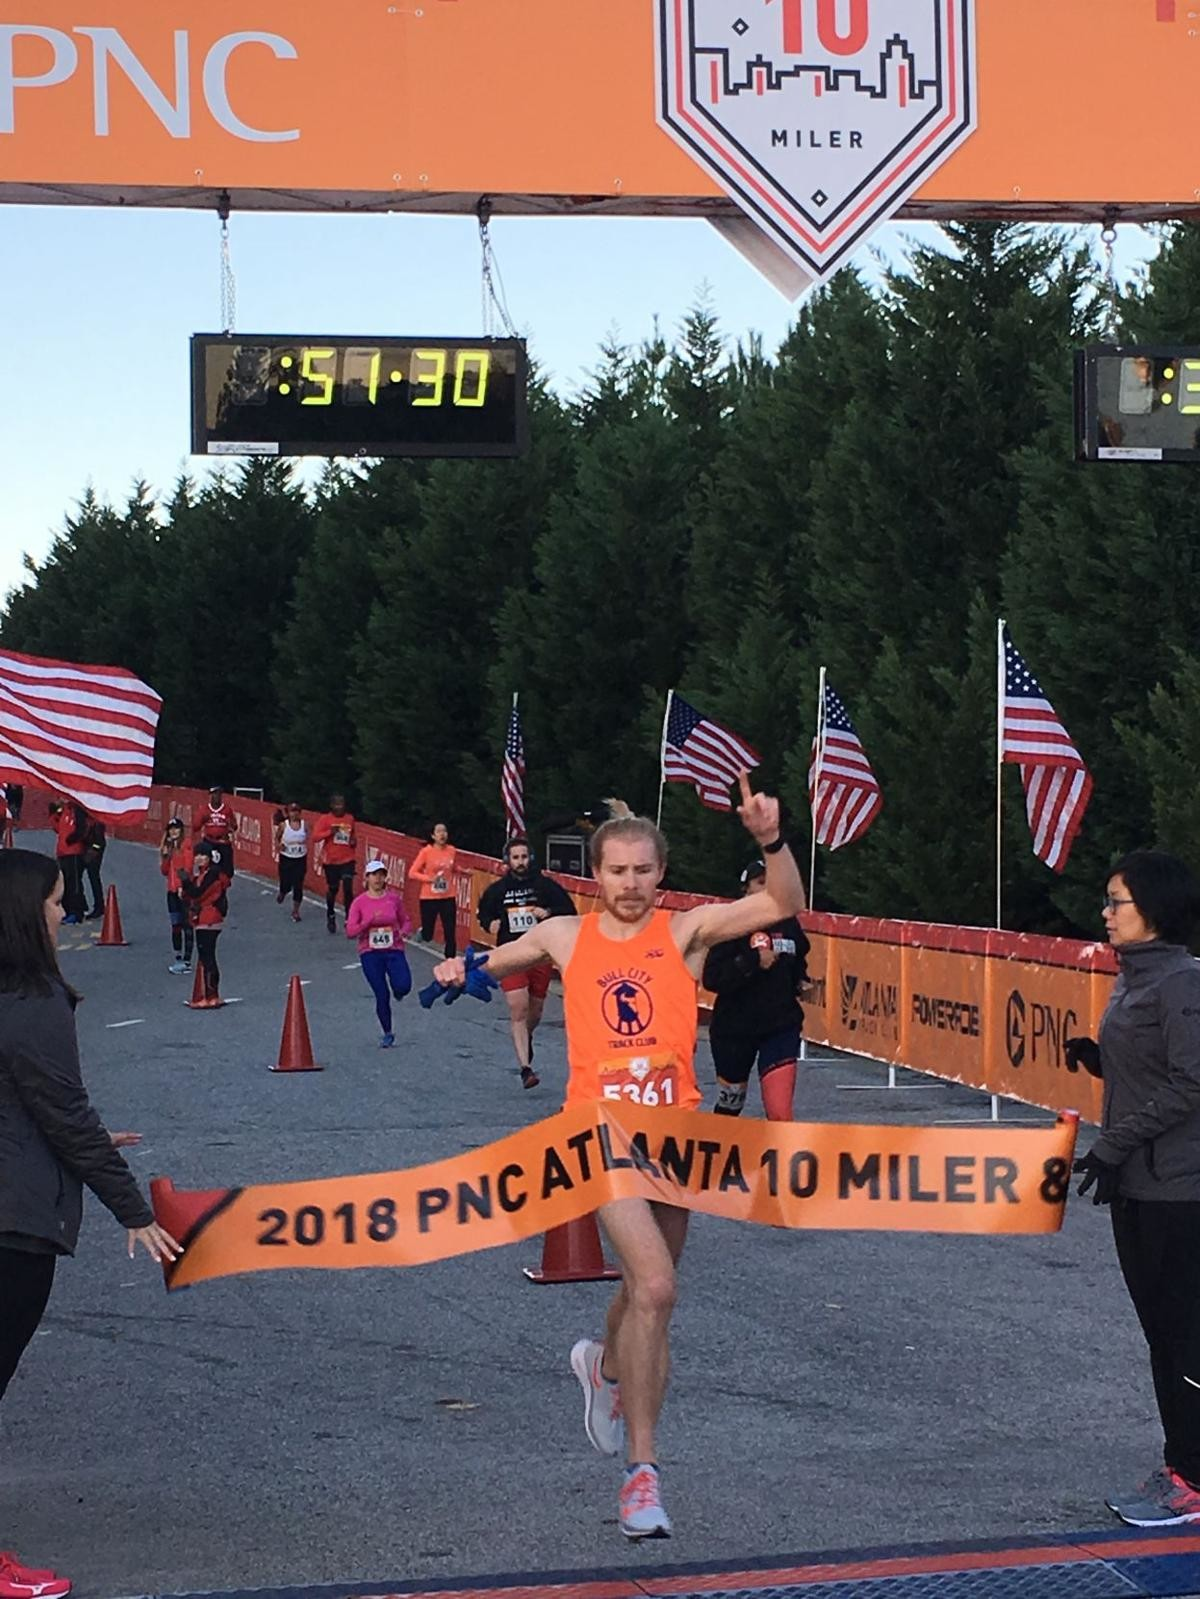 Evan Gates and Laurie Knowles were the winners at the  PNC Atlanta 10 miler